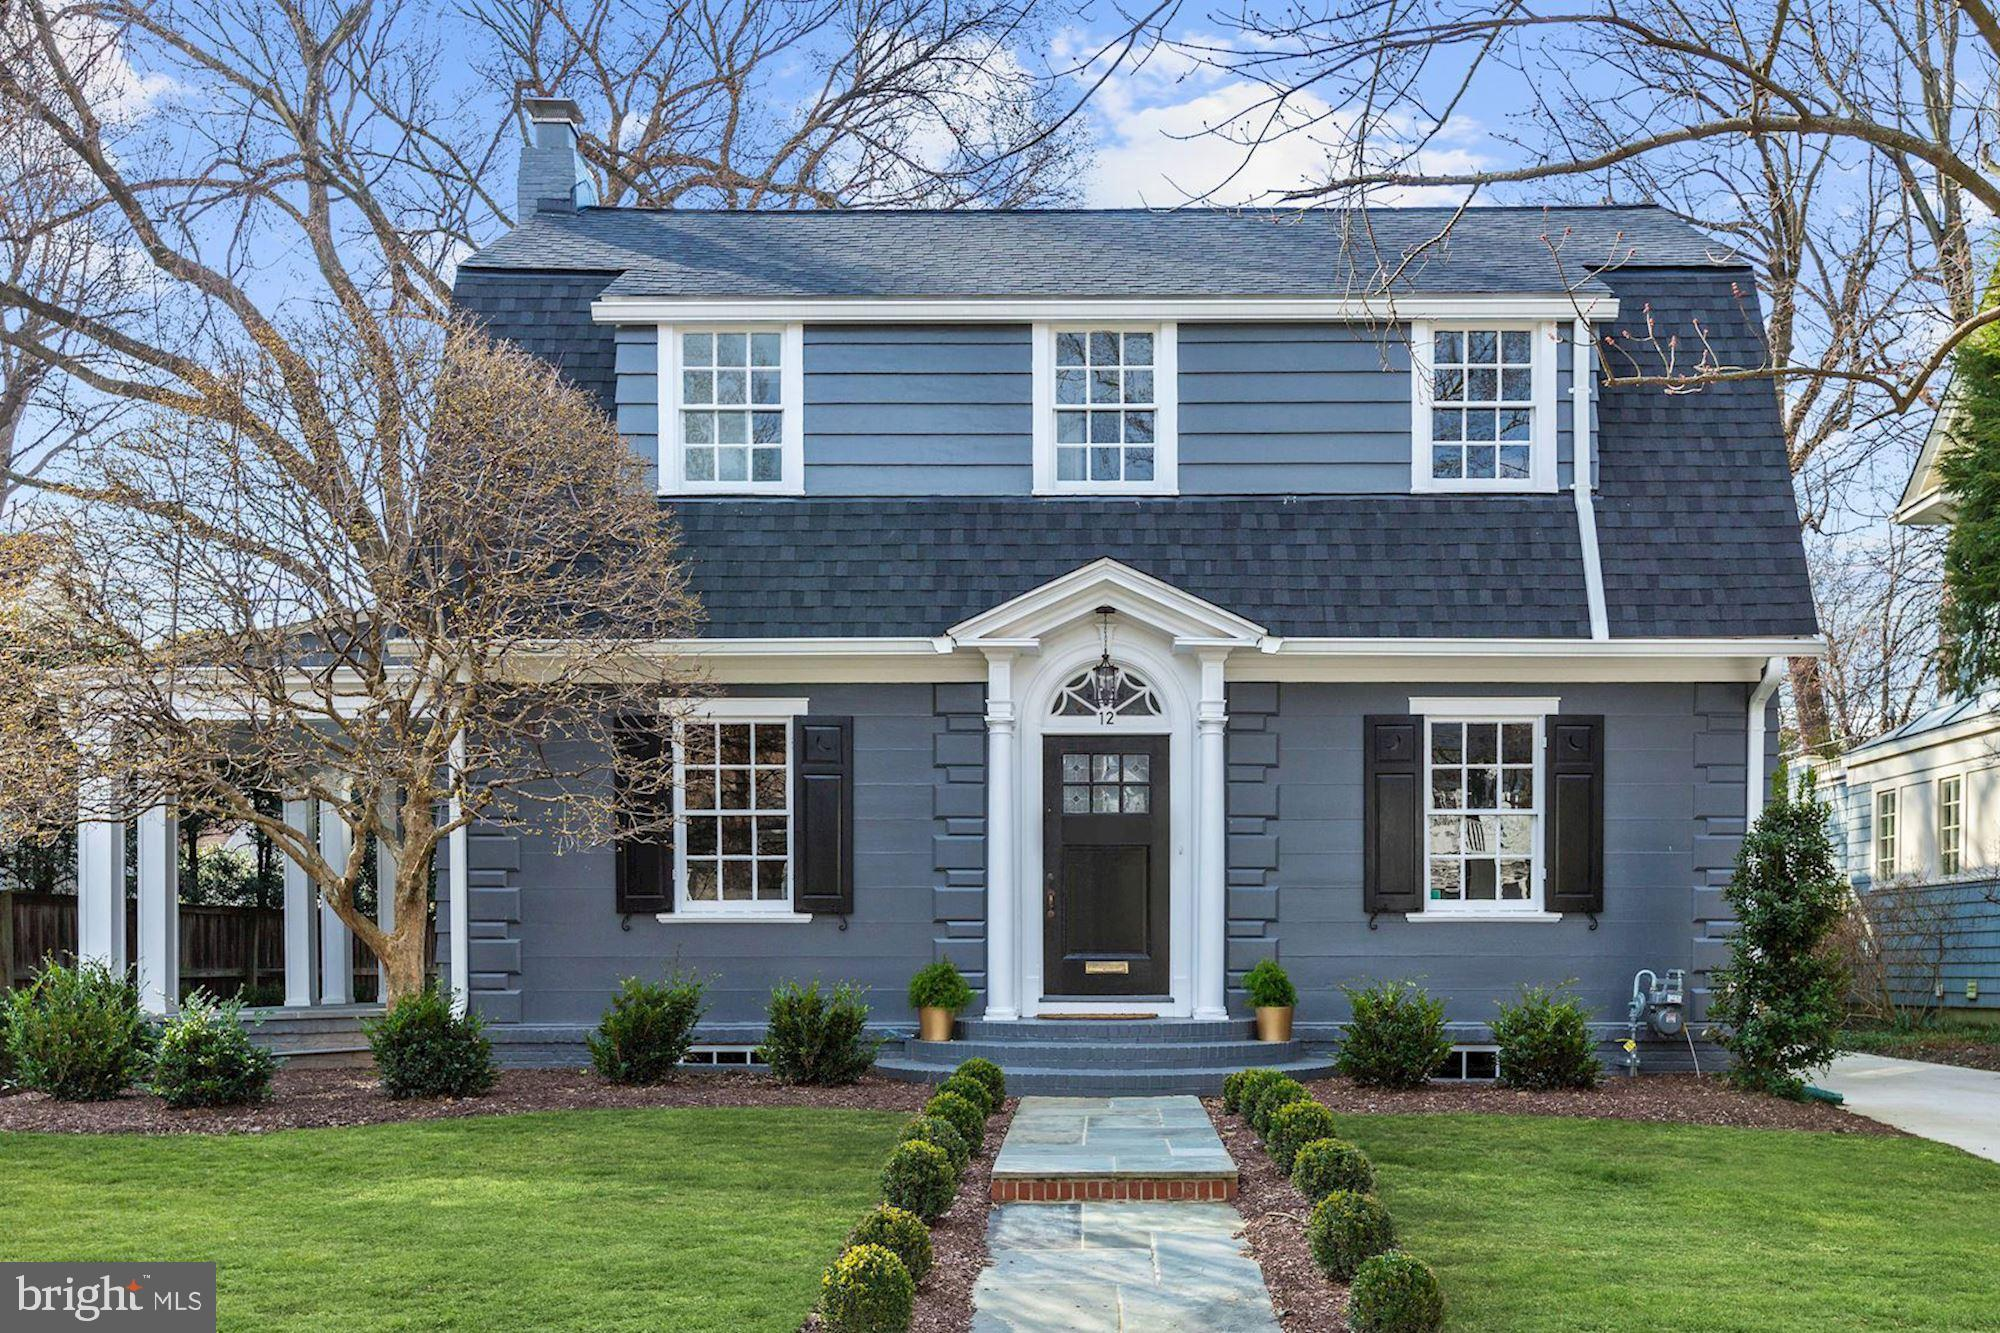 12 HESKETH STREET, CHEVY CHASE, MD 20815